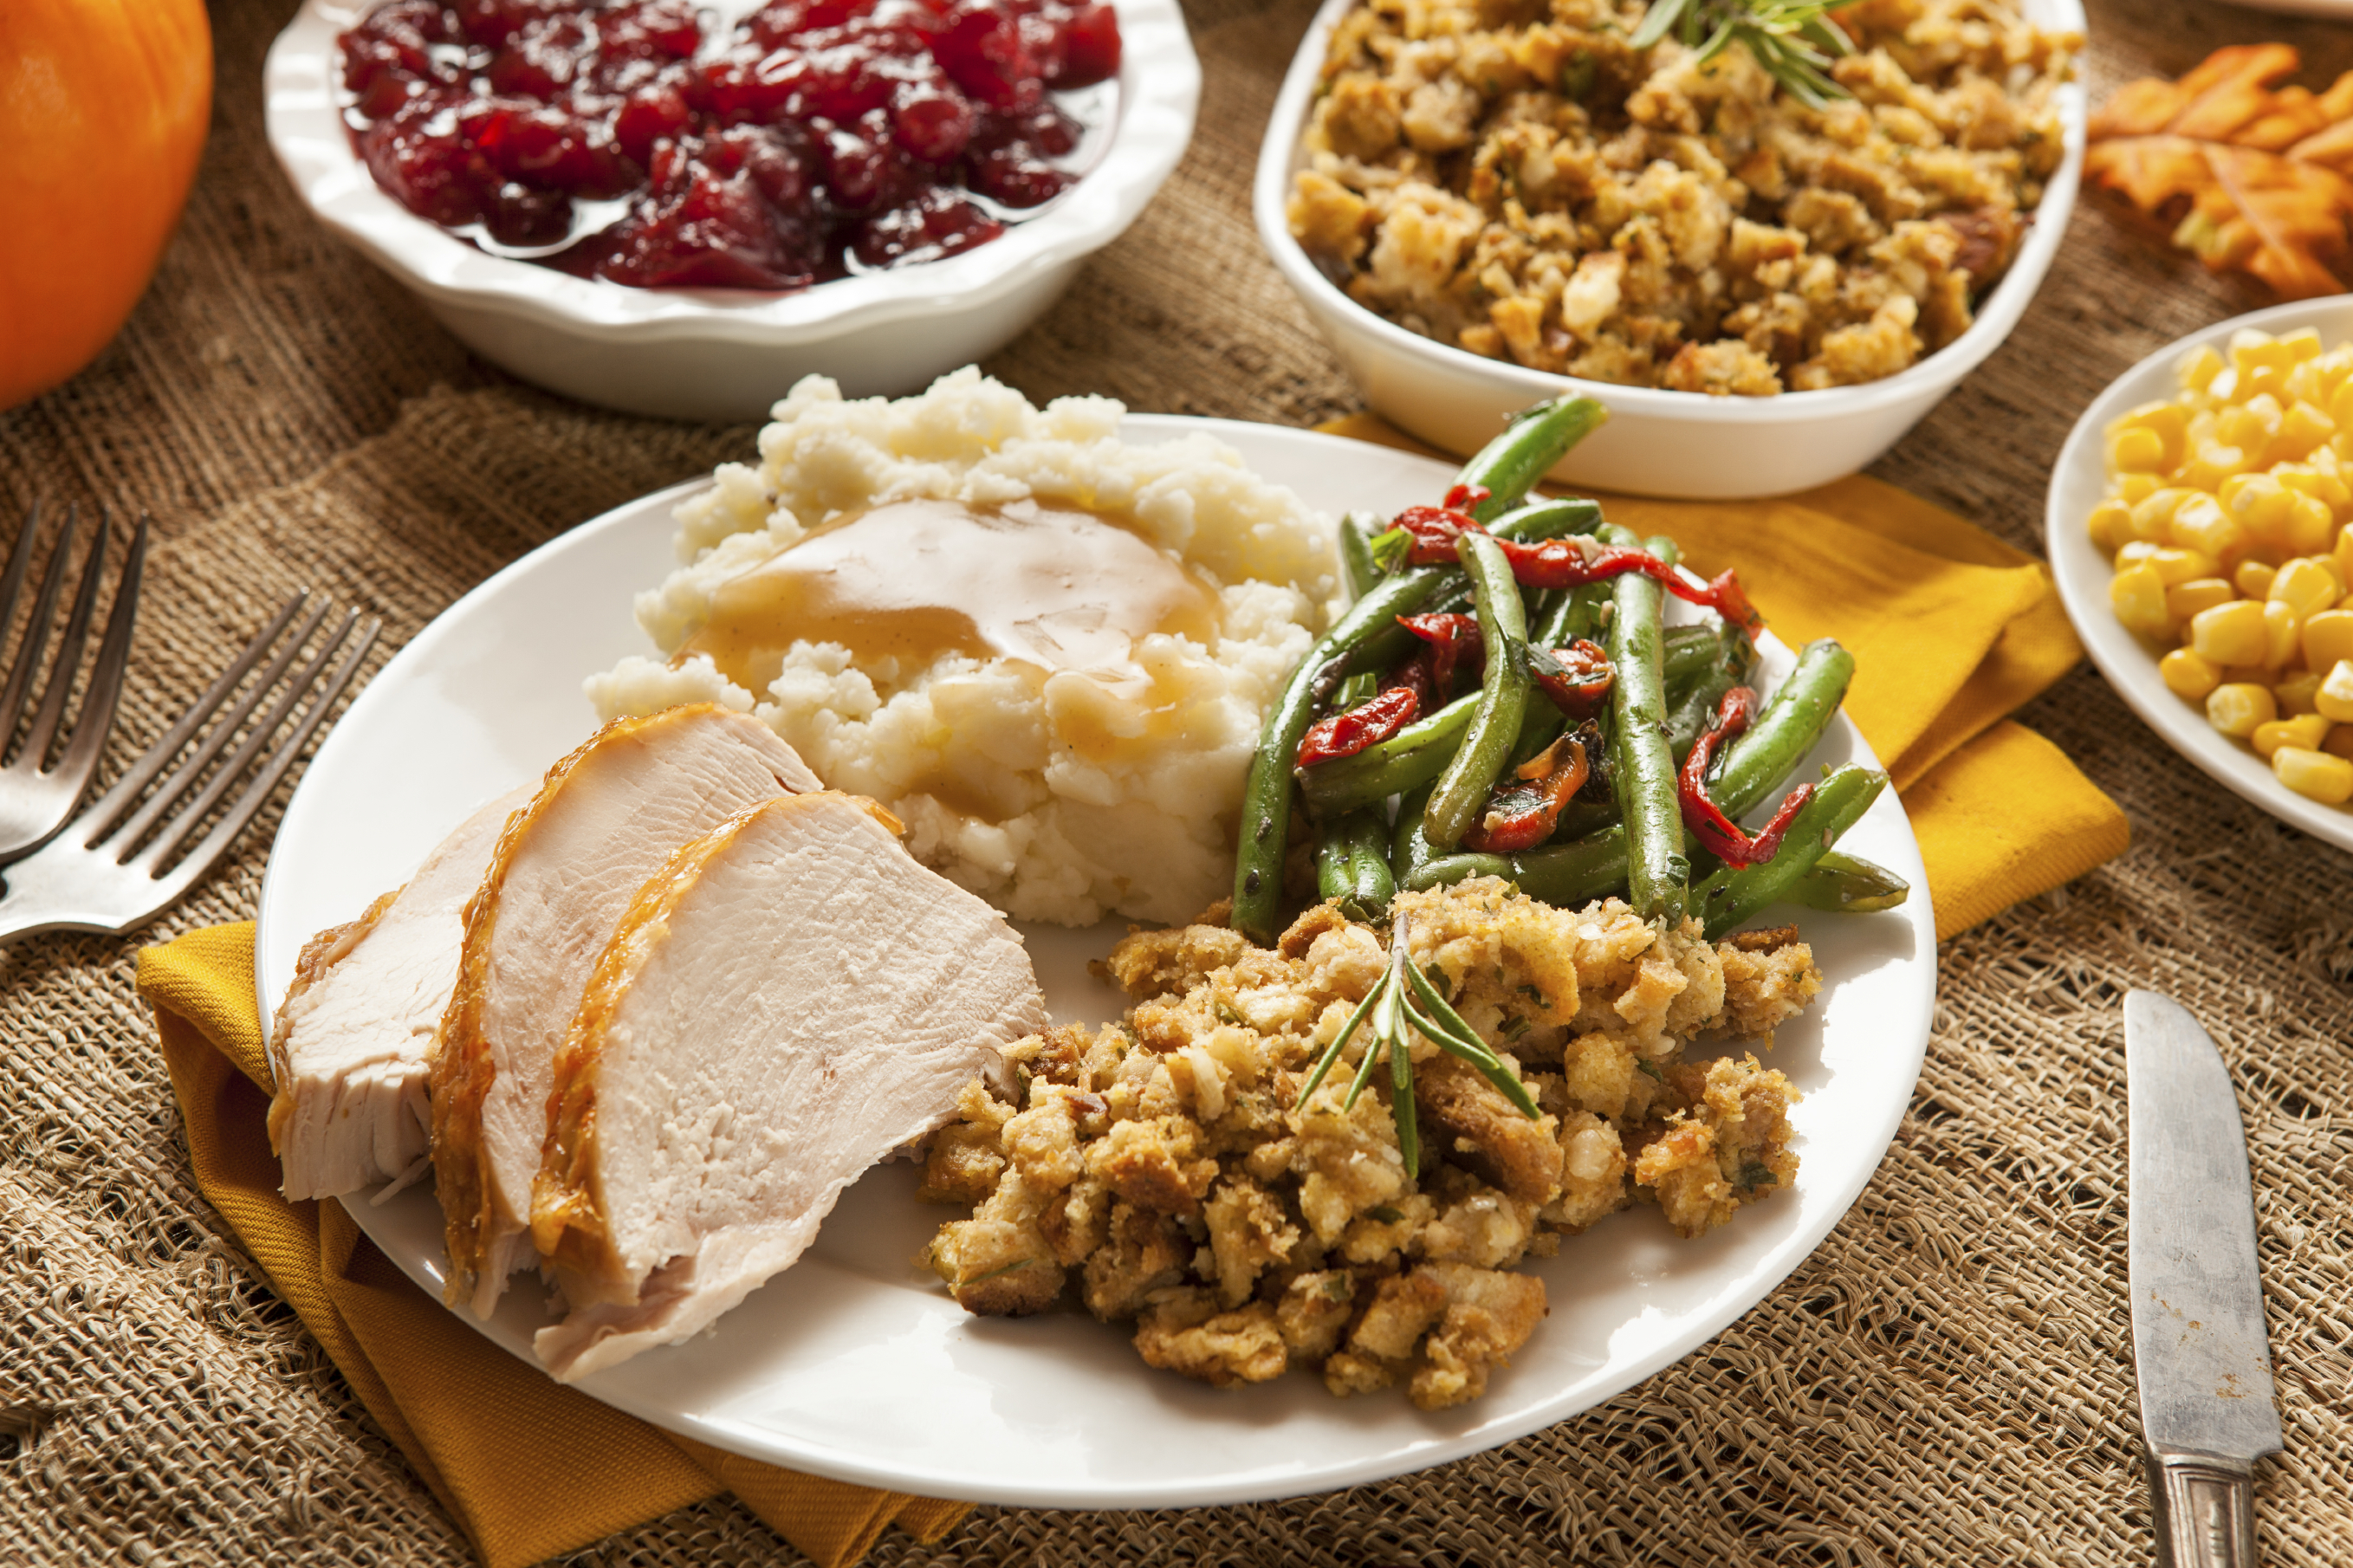 The traditional dishes of Thanksgiving feature their own myths about sleep-inducing turkey and nutrition. (iStock) & Whatu0027s really on your plate at Thanksgiving - The Daily Universe